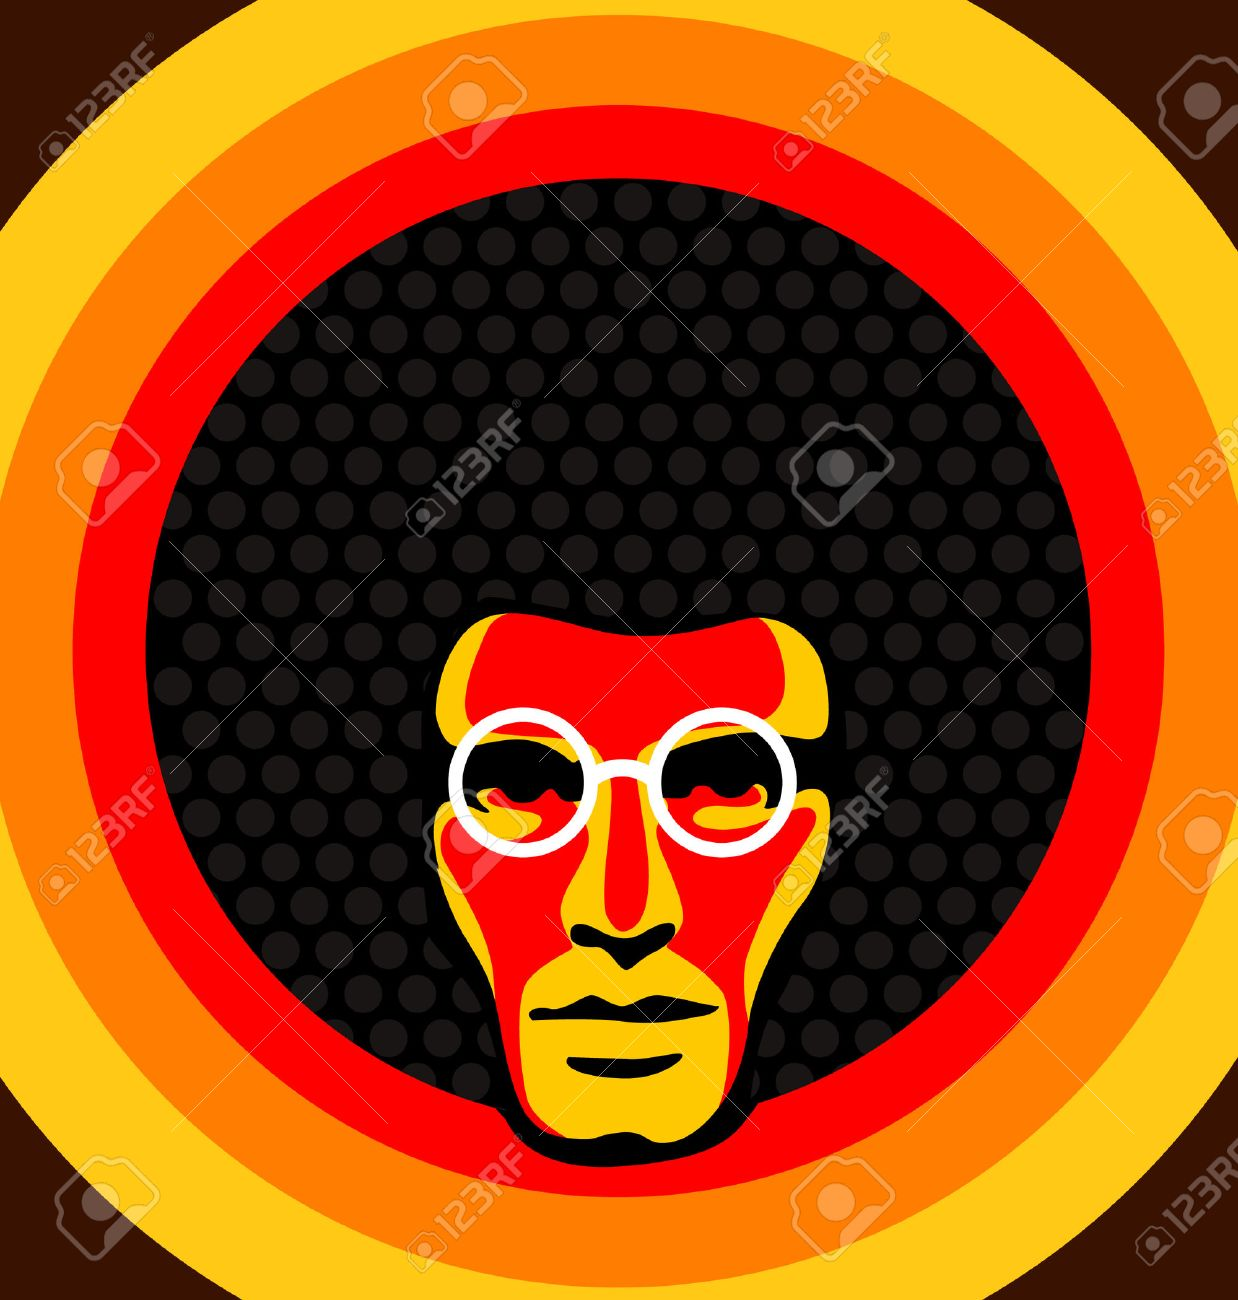 Afro Hair Vector of a male with afro hair